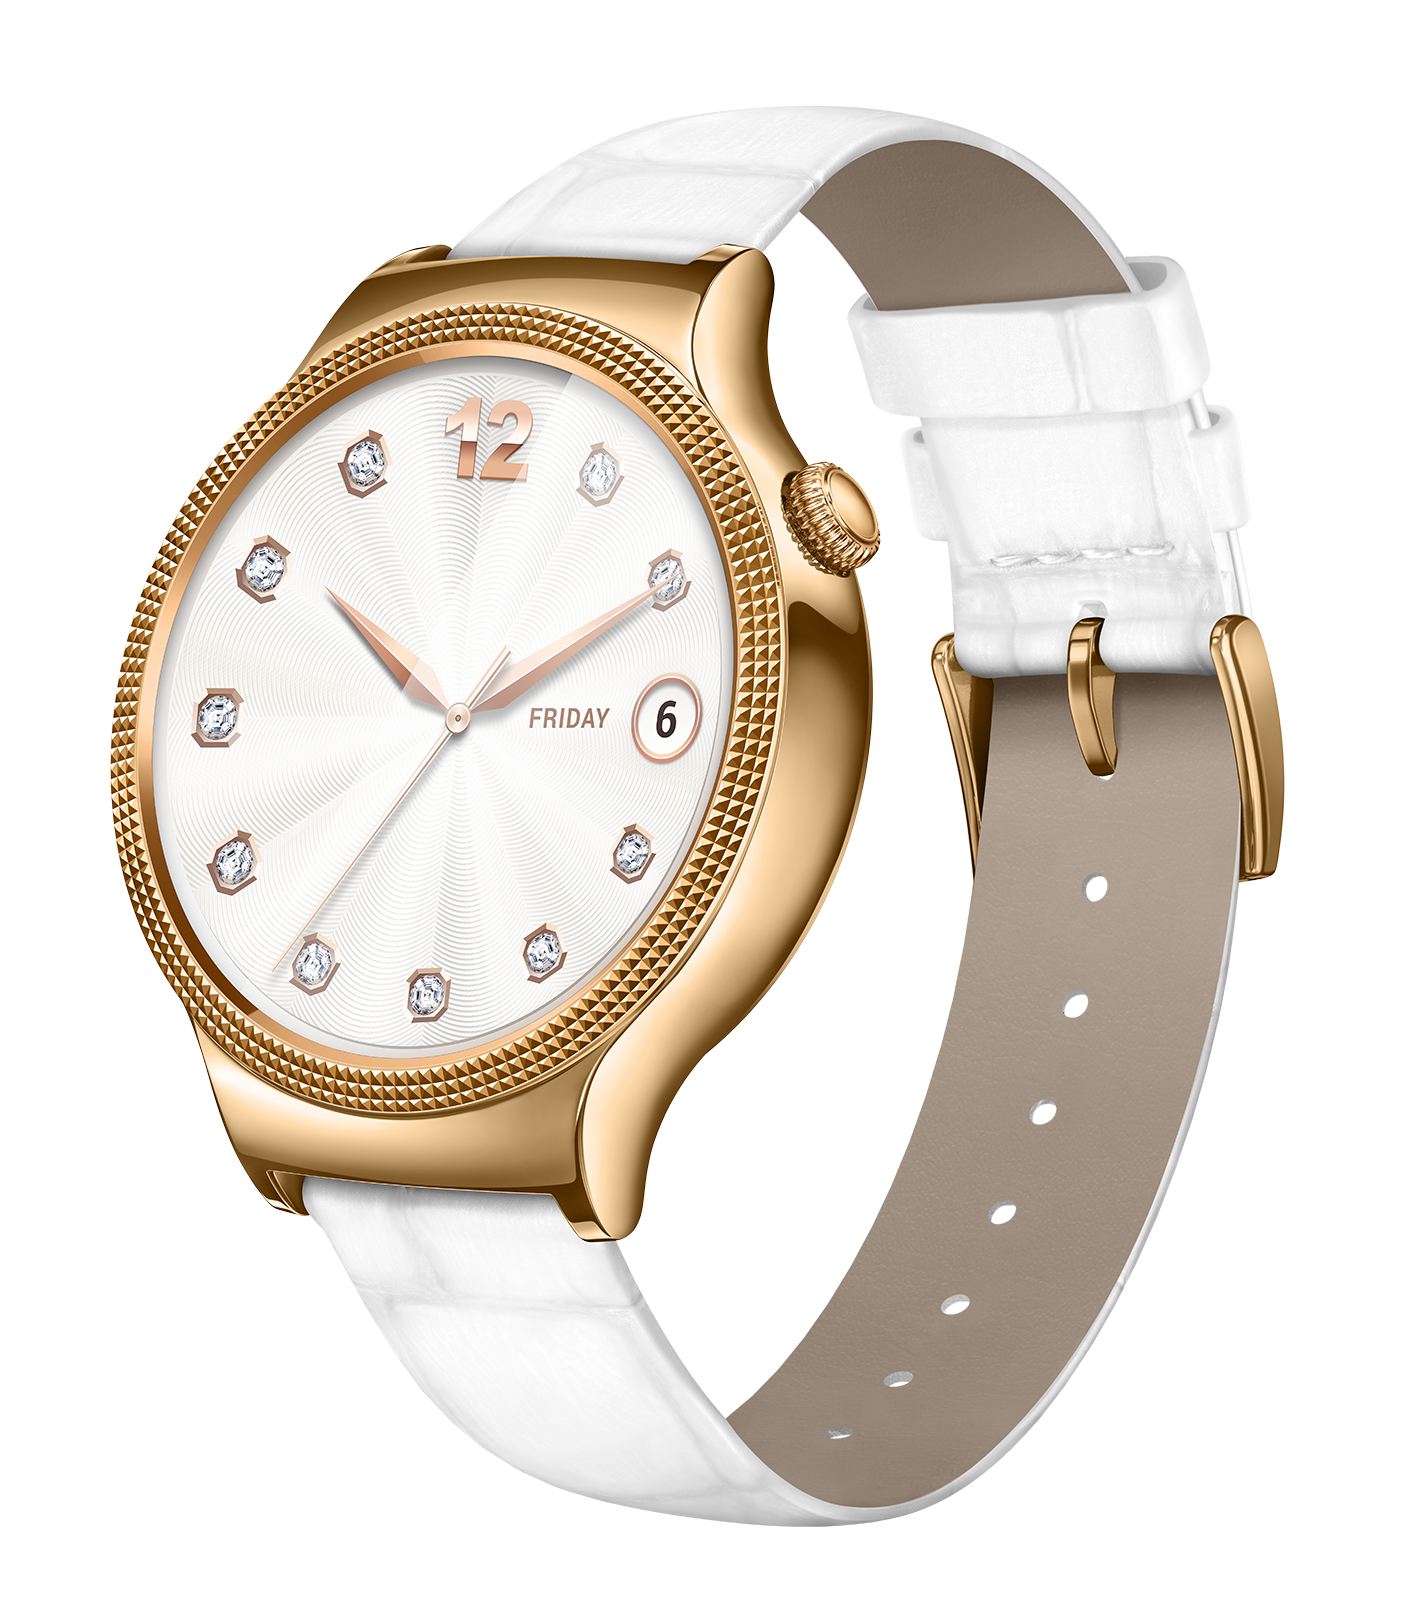 Huawei Lady Watch-White strap with ladylike-04-PNG-20160105